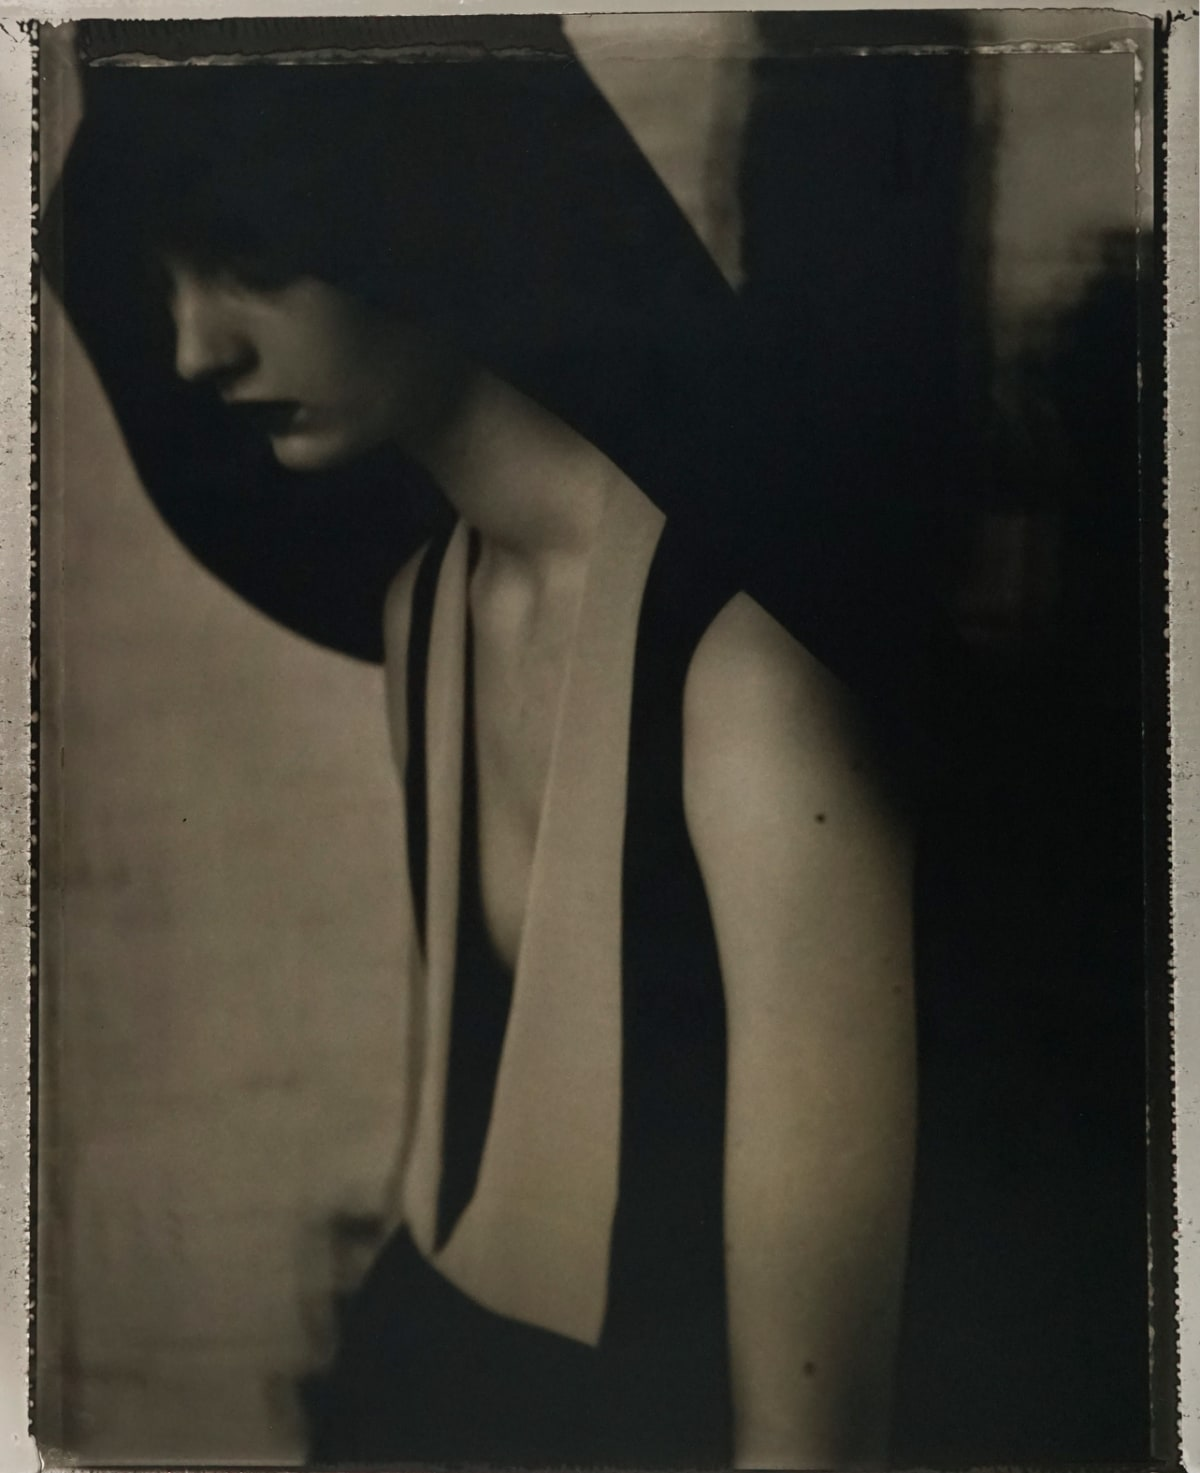 "Sarah Moon La Ralentie, 2011 Gelatin Silver Print Image - 17.5""x21.75"", Paper - 20""x24"", Matted - 24""x30"" Edition 5 of 15"